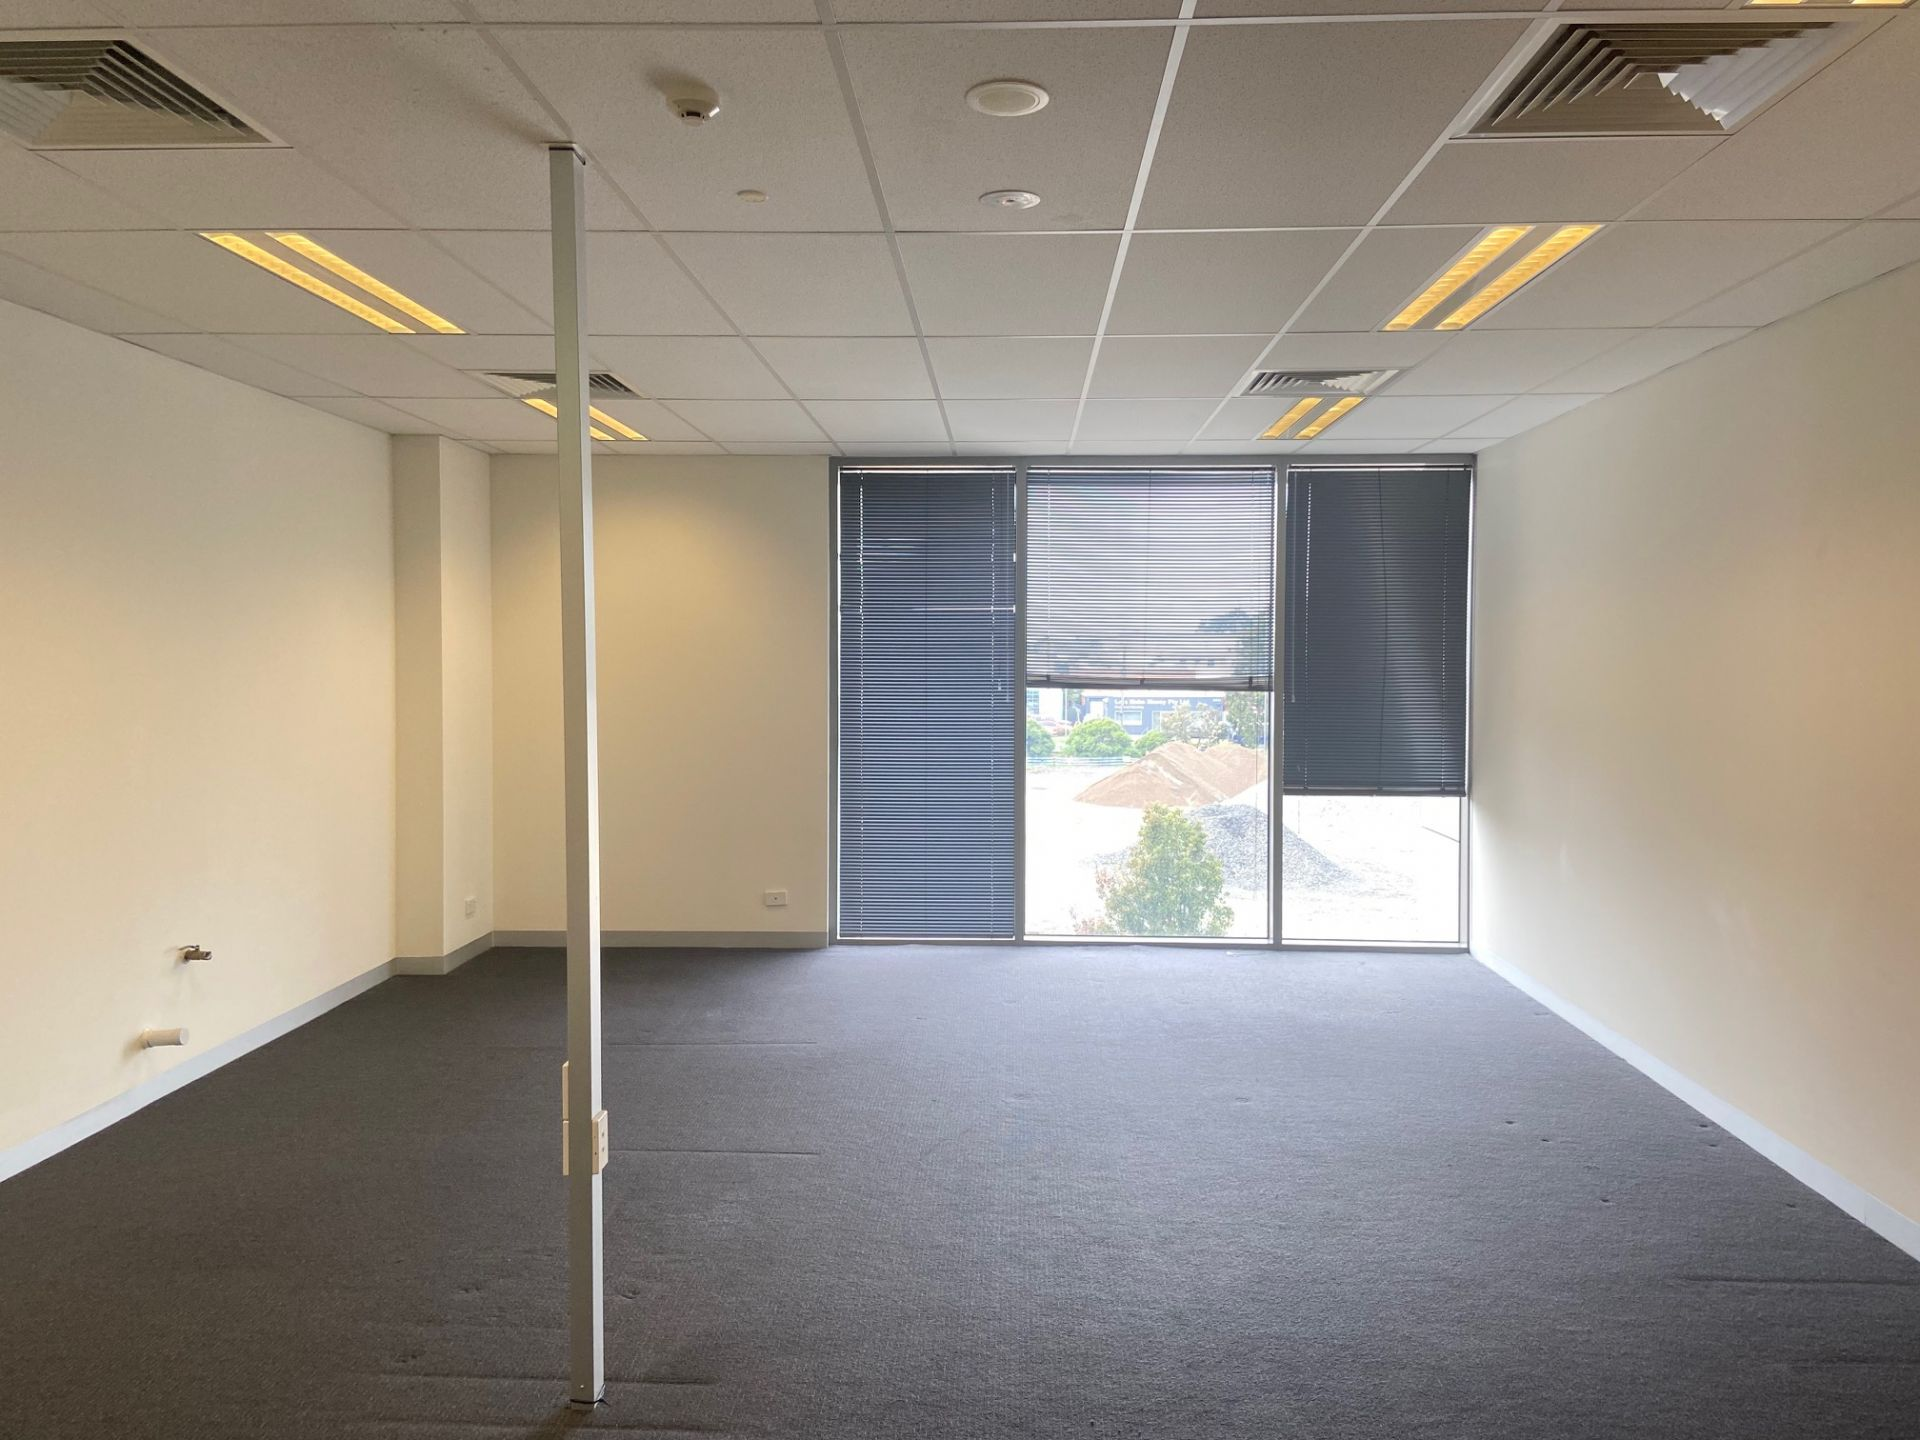 First Class Office on a Budget! Landlord offering 3 months at 50% rental